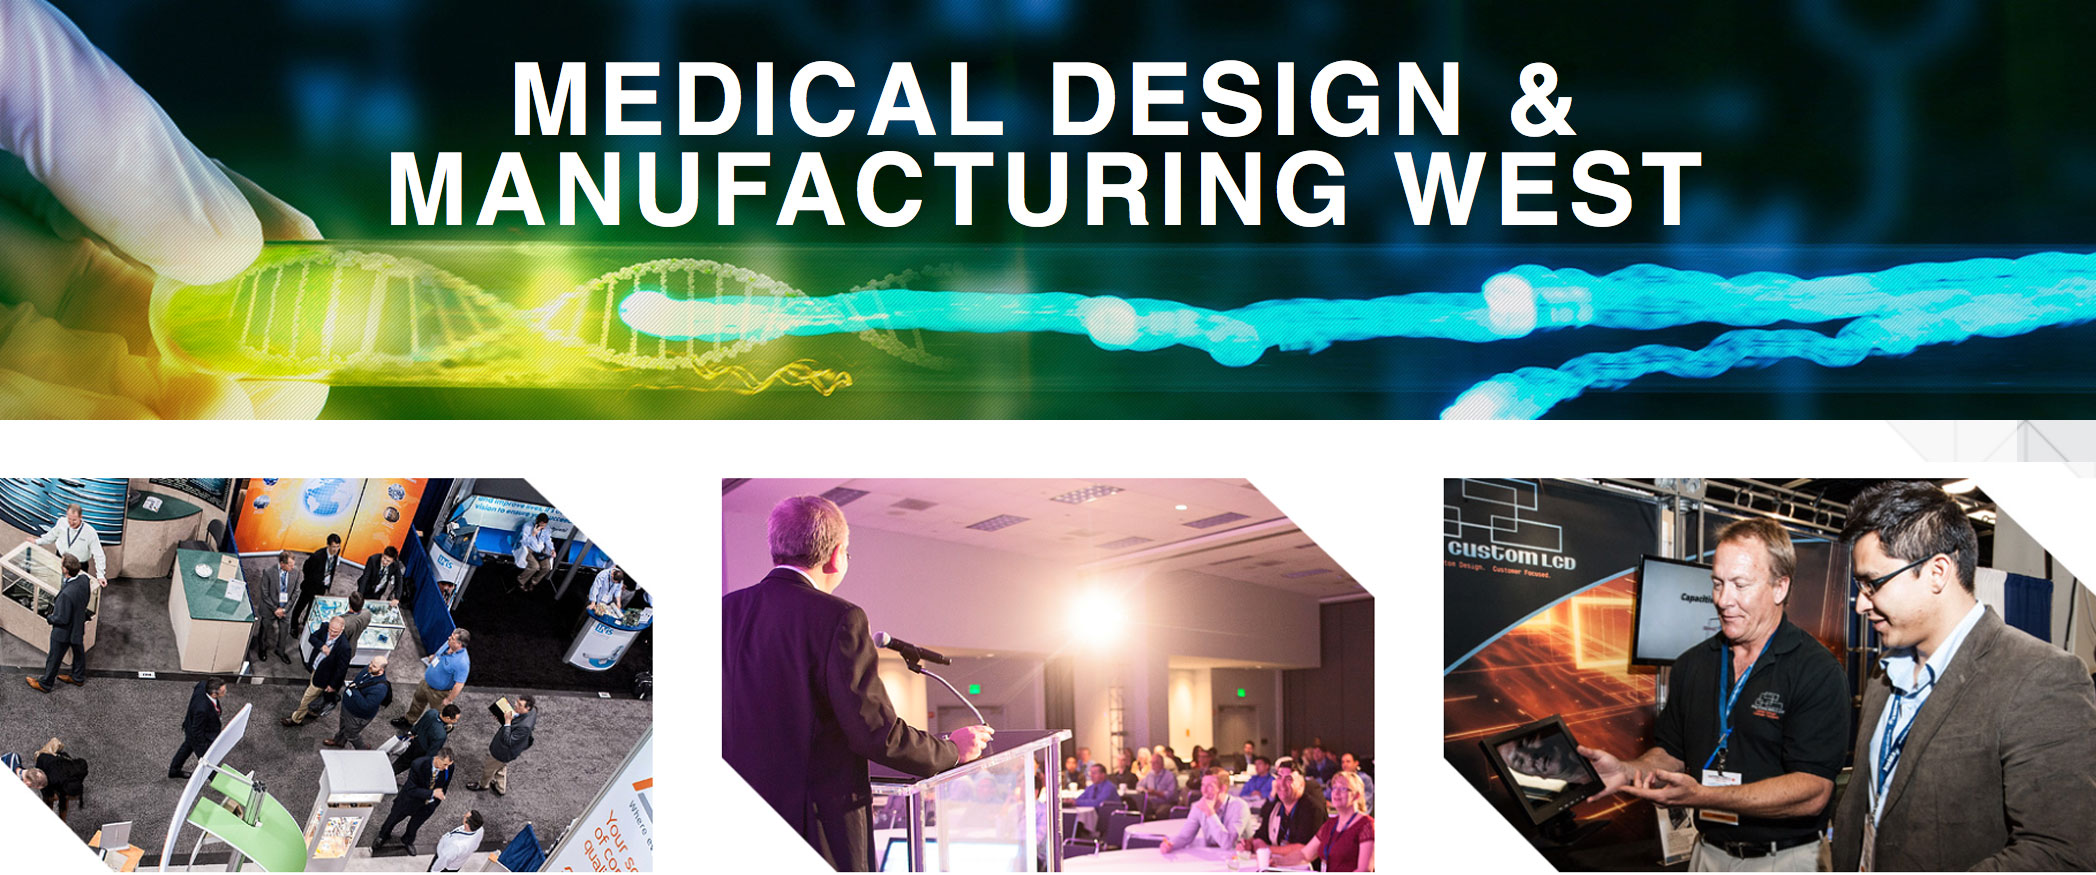 MD&M West event - February 9-11 - Anaheim Convention Center, CA